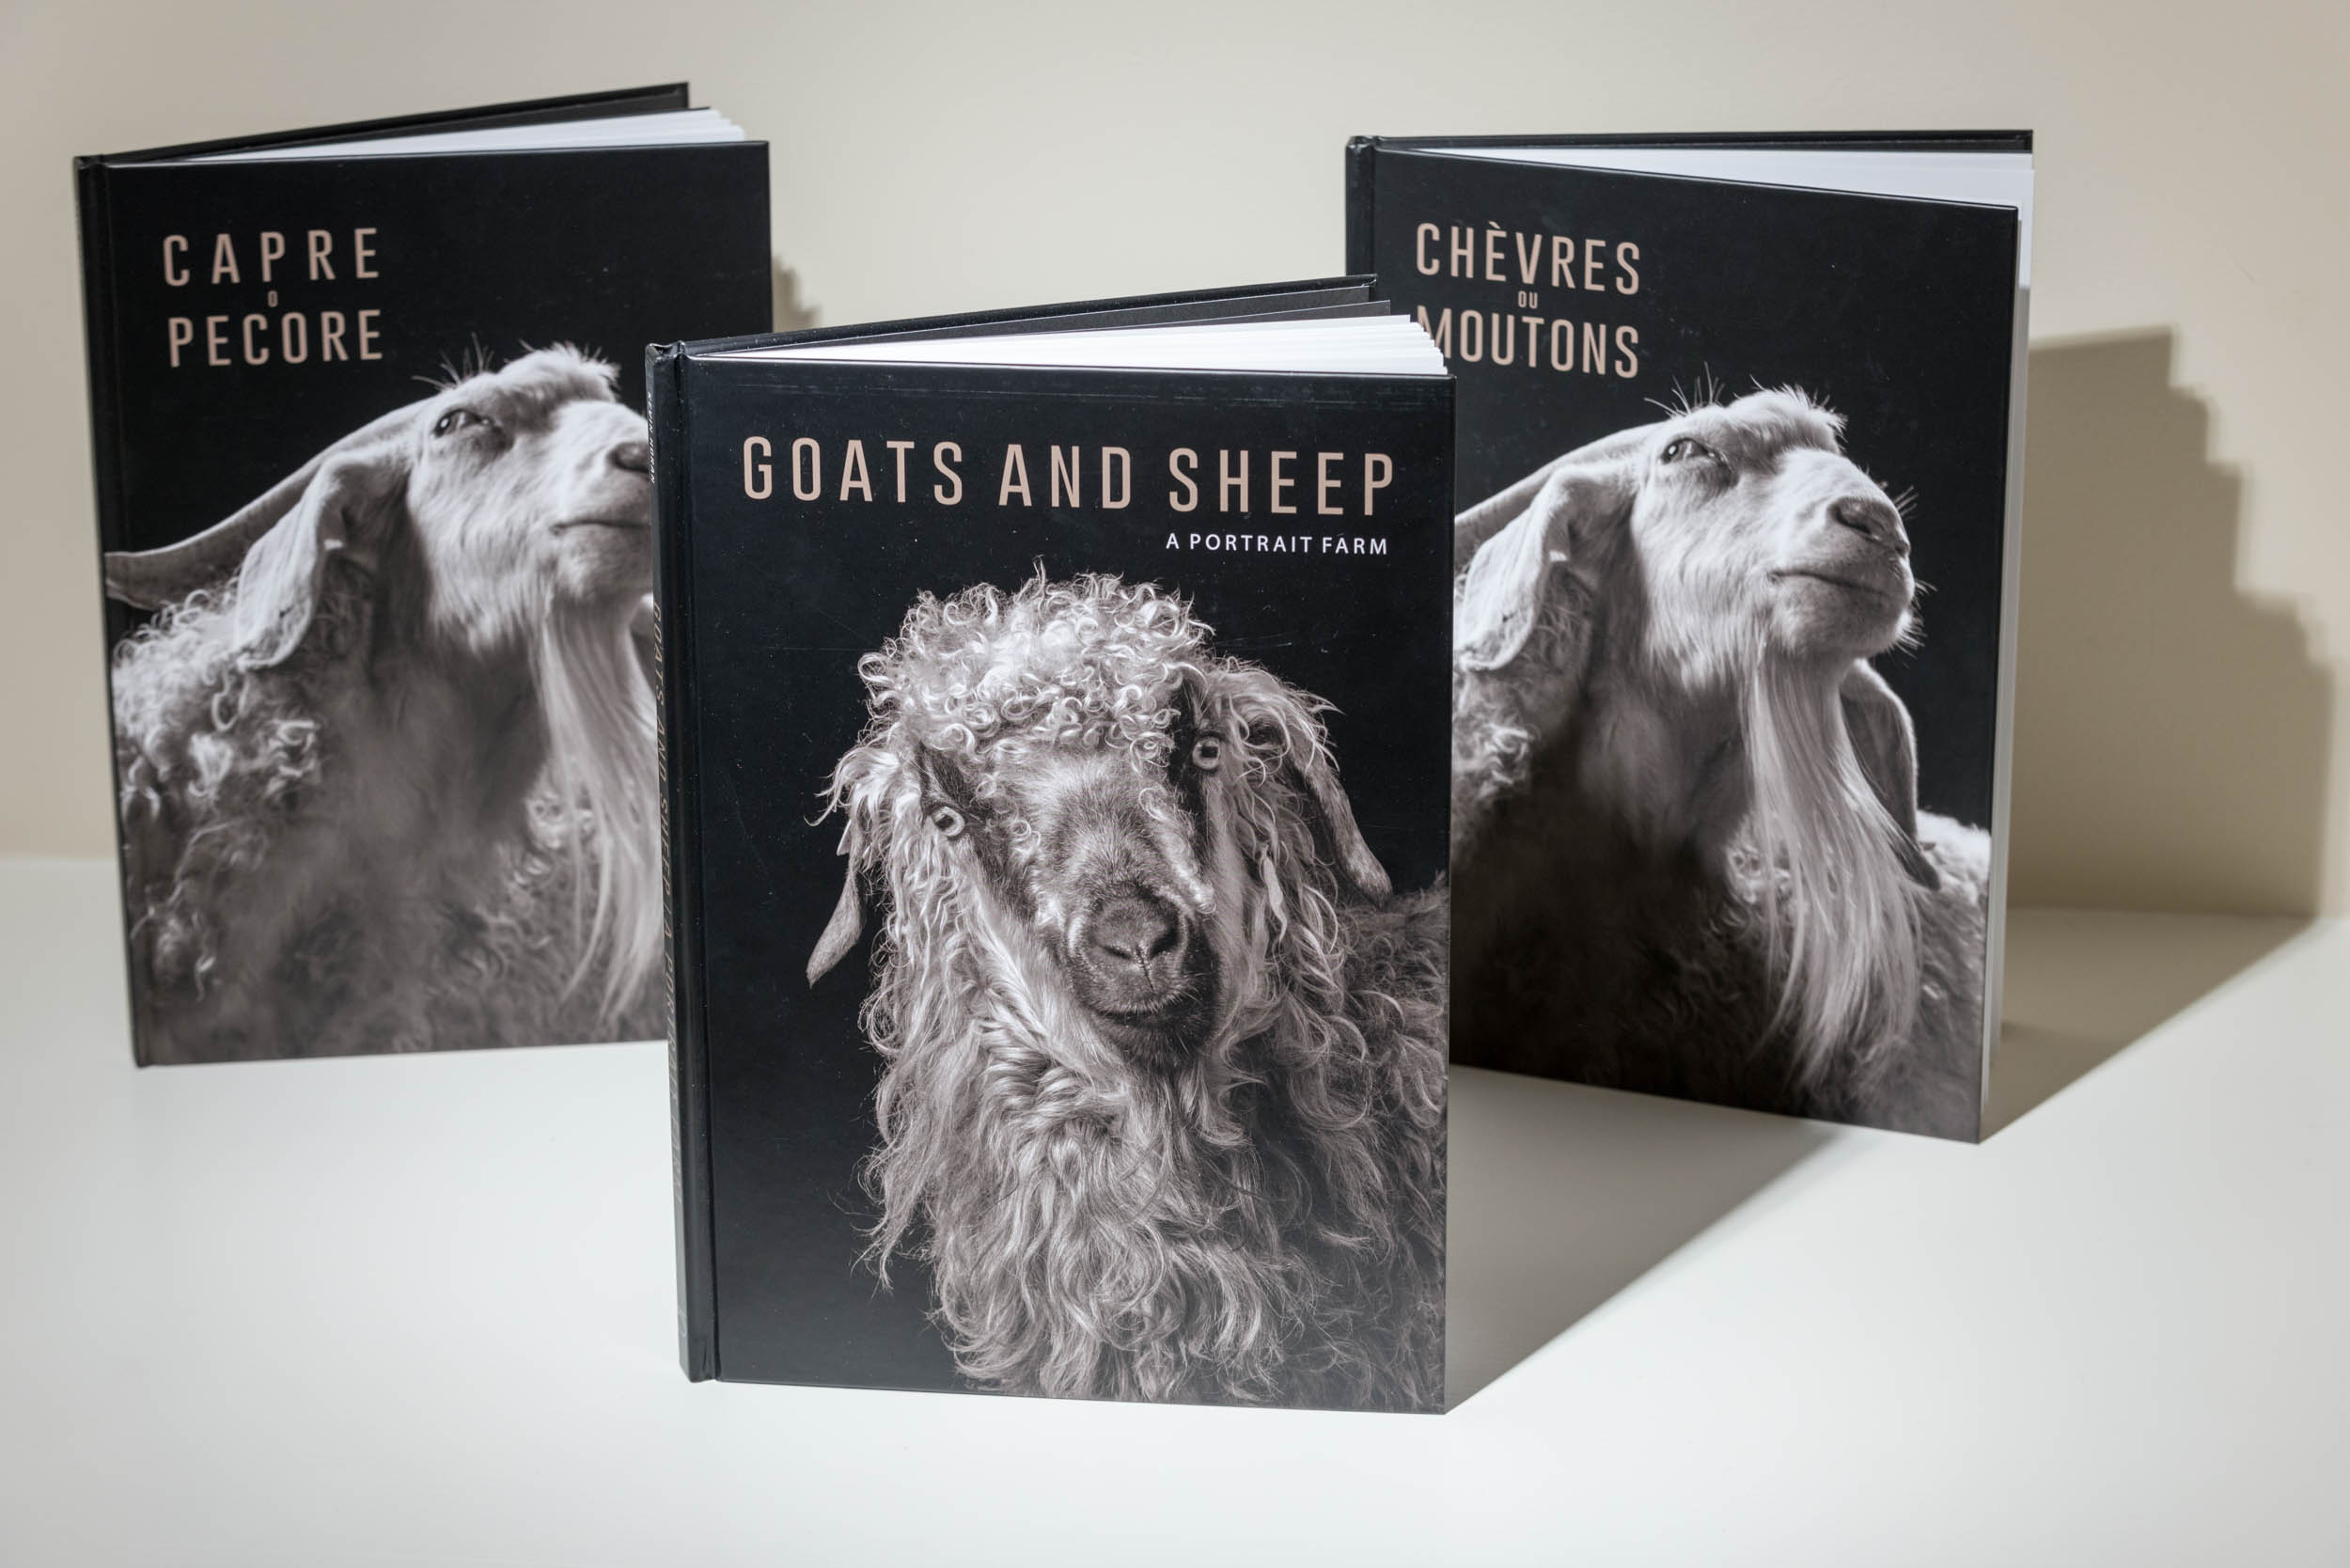 Goats And Sheep: A Portrait Farm , published in Milan by  5 Continents Editions , is now available. The English-language edition, set for U.S. release March 1, can be ordered now from the  distributor  or preordered from your favorite bookseller. The  Italian  and  French  editions can be ordered directly from the publisher.